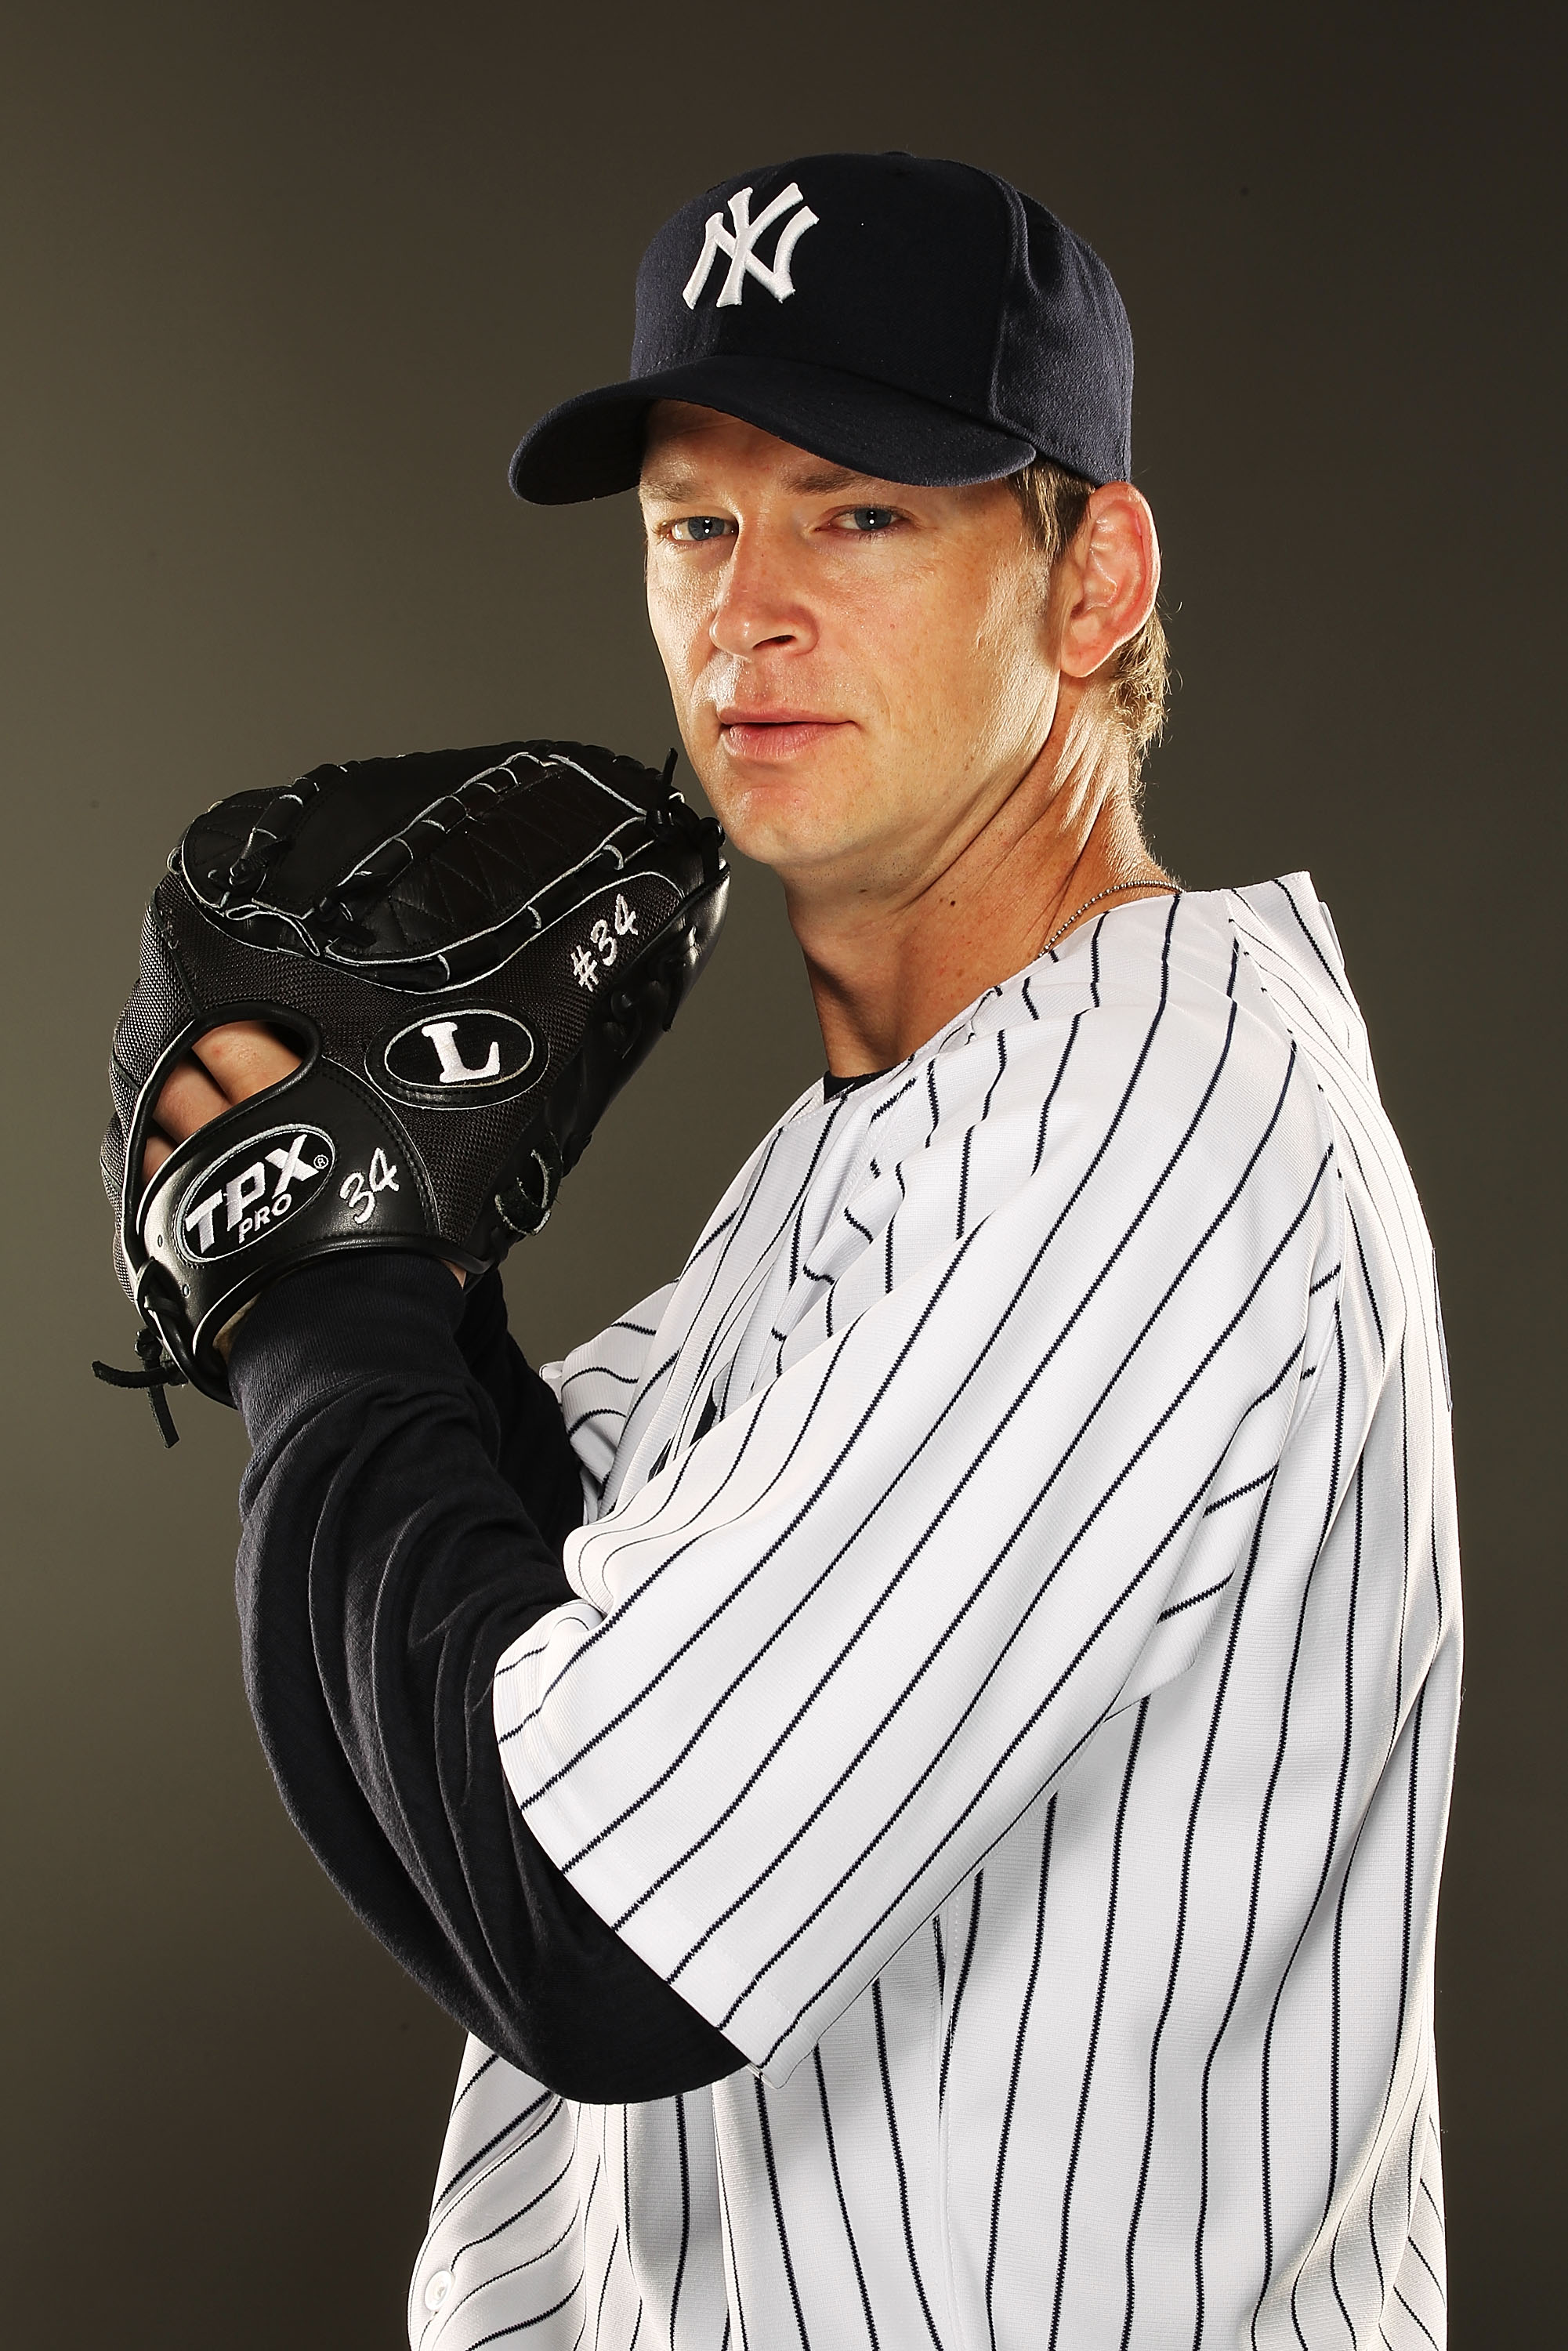 TAMPA, FL - FEBRUARY 23:  A.J. Burnett #34 of the New York Yankees poses for a portrait on Photo Day at George M. Steinbrenner Field on February 23, 2011 in Tampa, Florida.  (Photo by Al Bello/Getty Images)